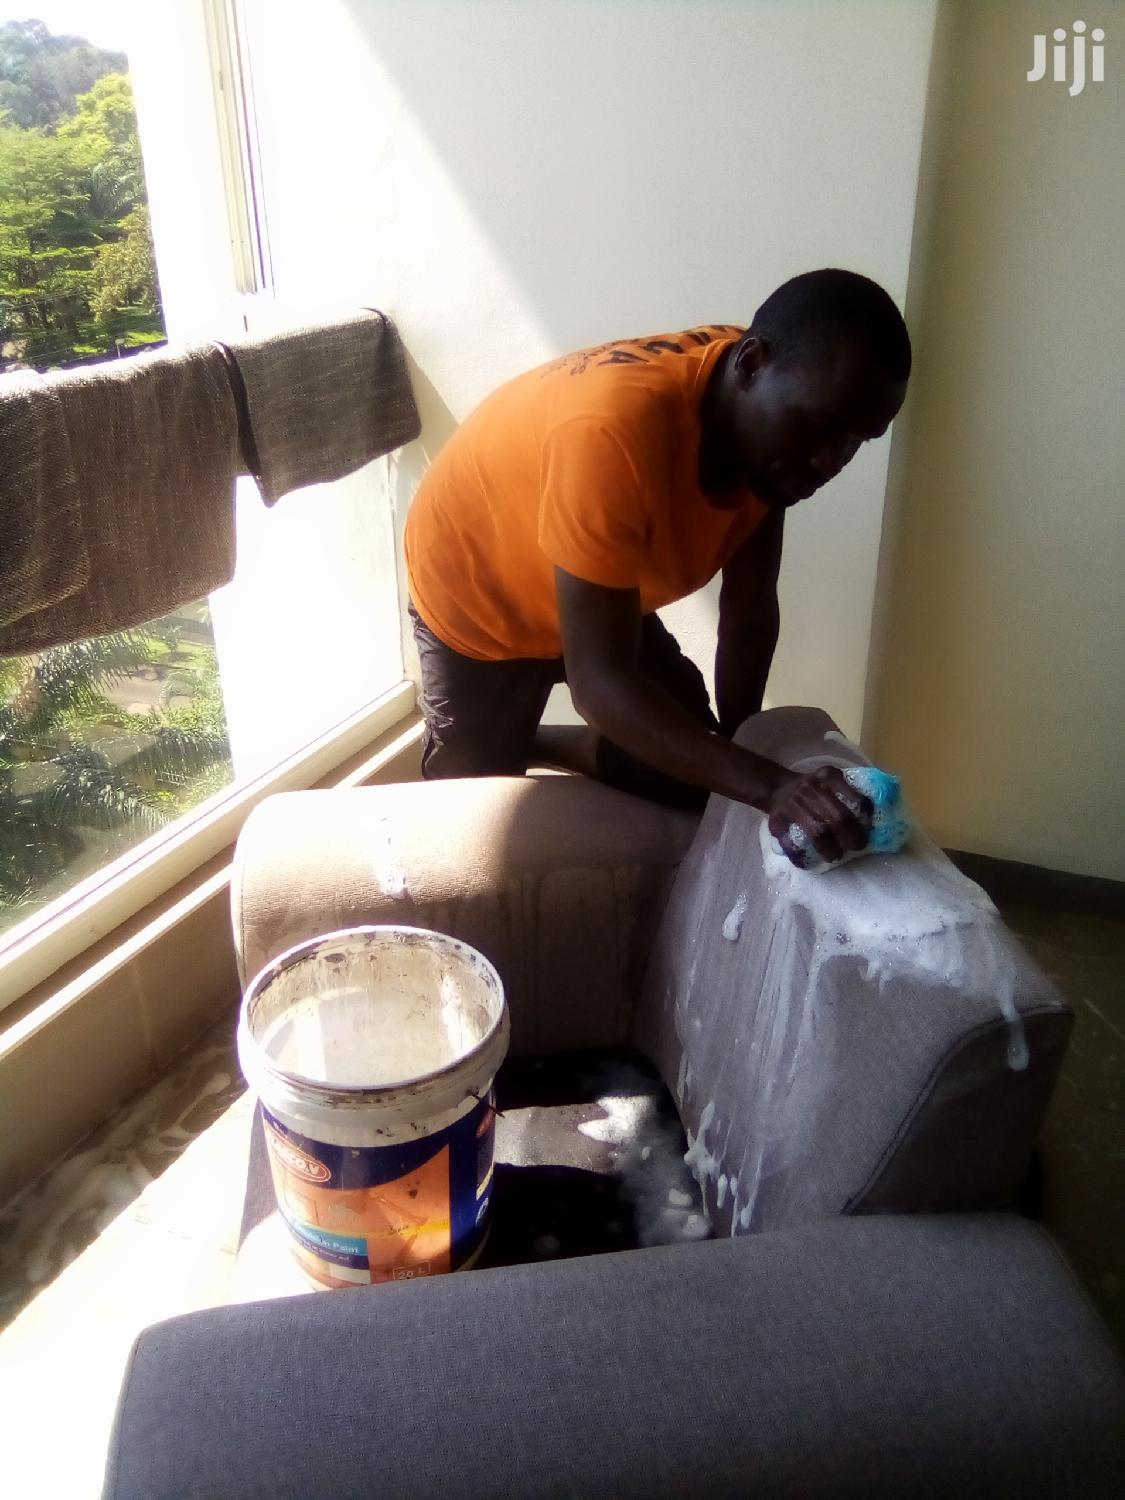 Carpet Cleaning, Sofa Cleaning And Fumigation Pest Spraying